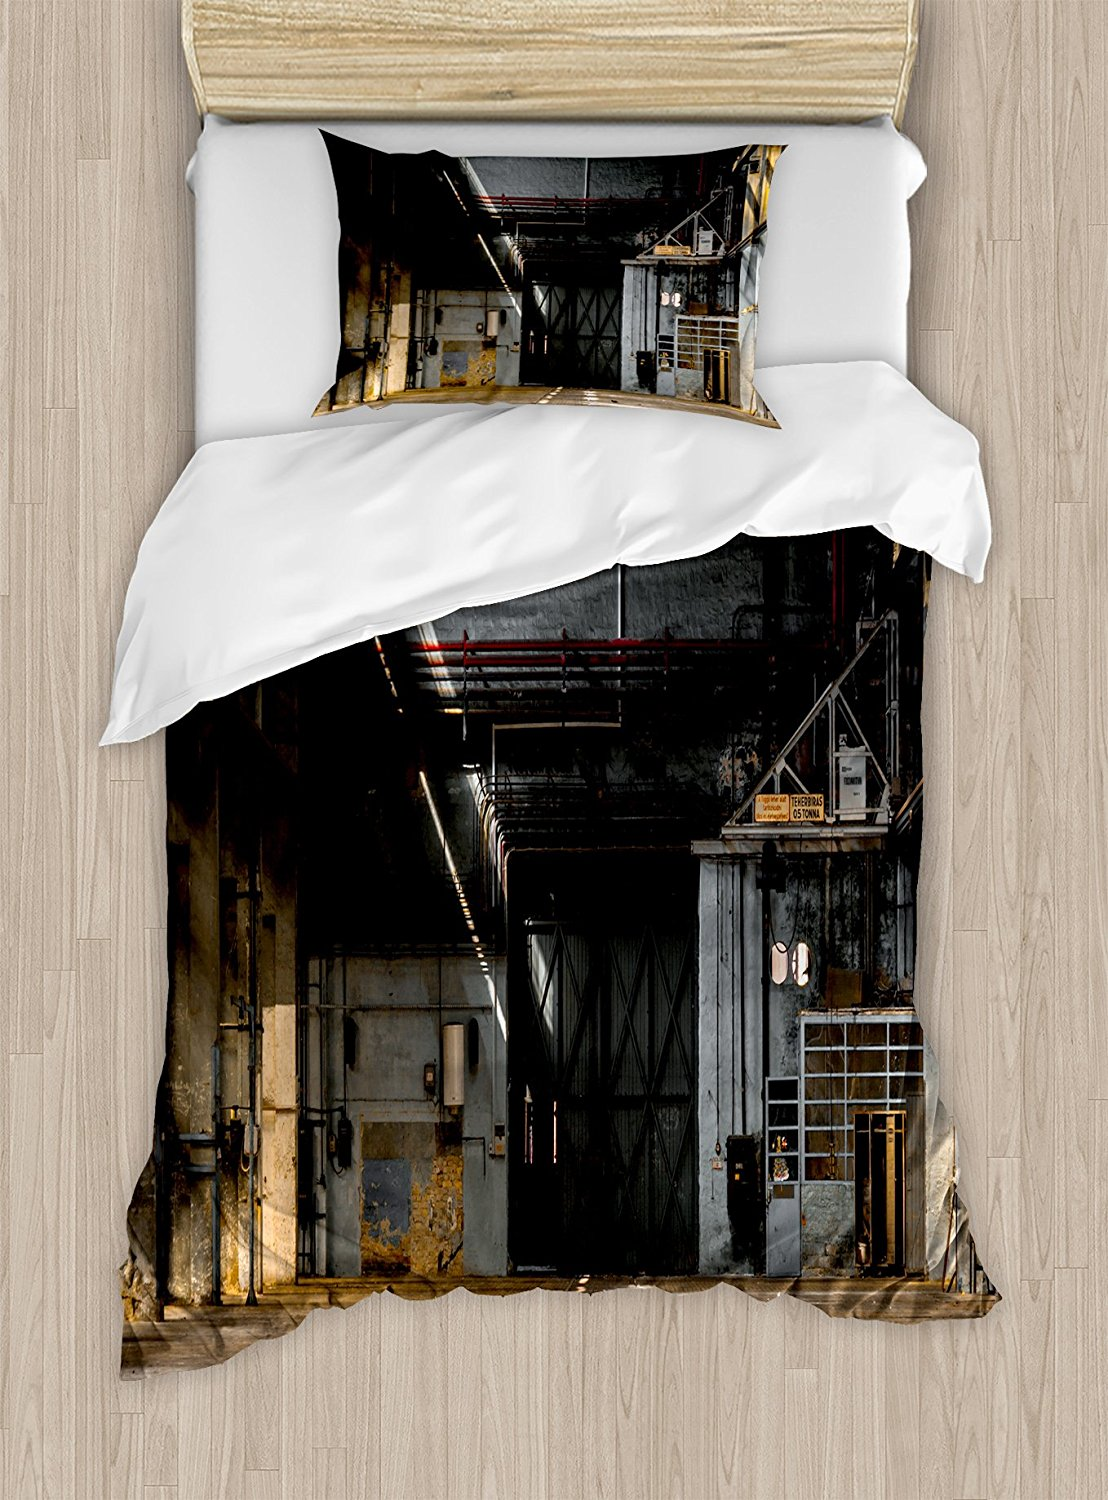 Industrial Duvet Cover Set Dark Industrial Interior of an Old Building Place of Manufacturing Hangar Print Bedding Set